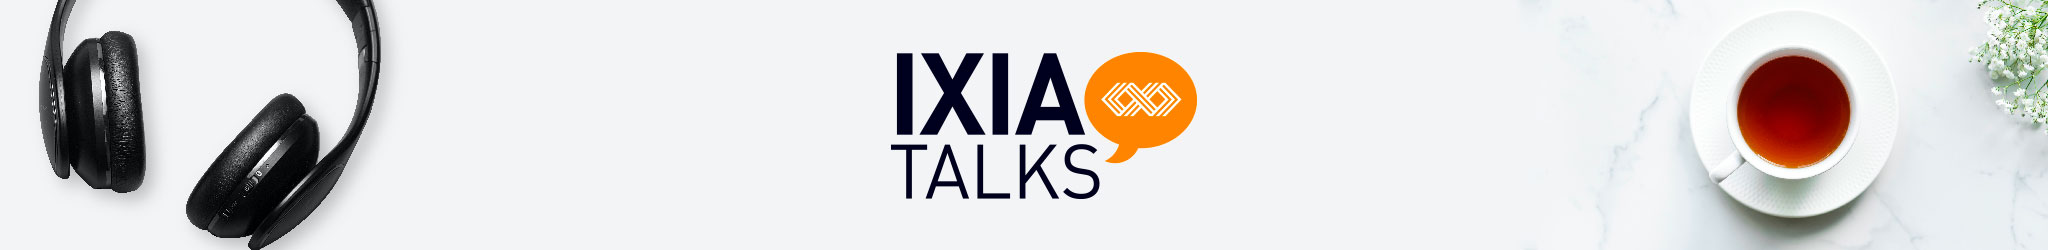 IXIAtalks logo with headphones and tea mug.